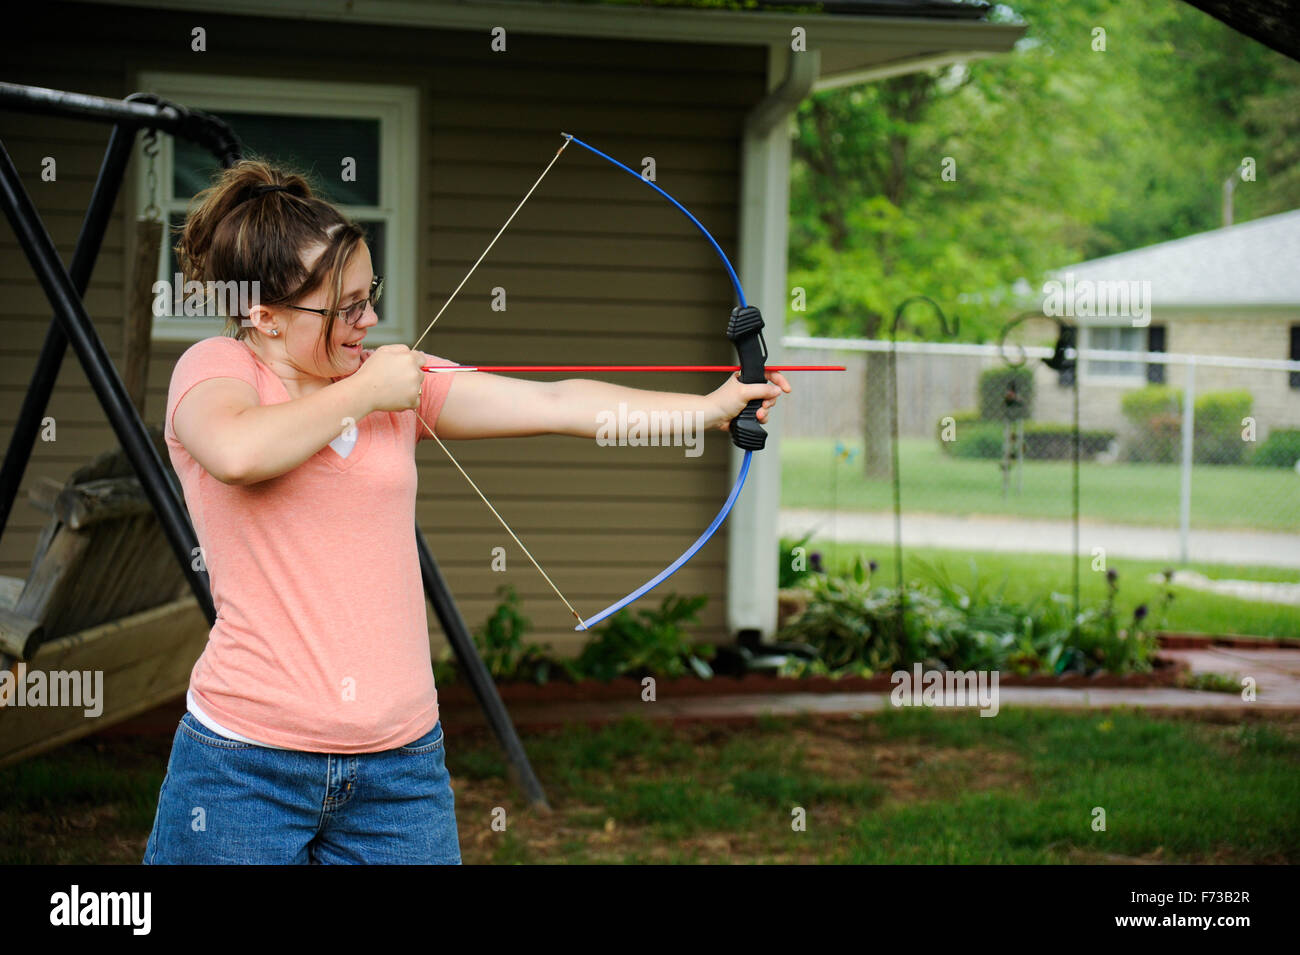 Pre-teen girl with bow and arrow in back yard - Stock Image